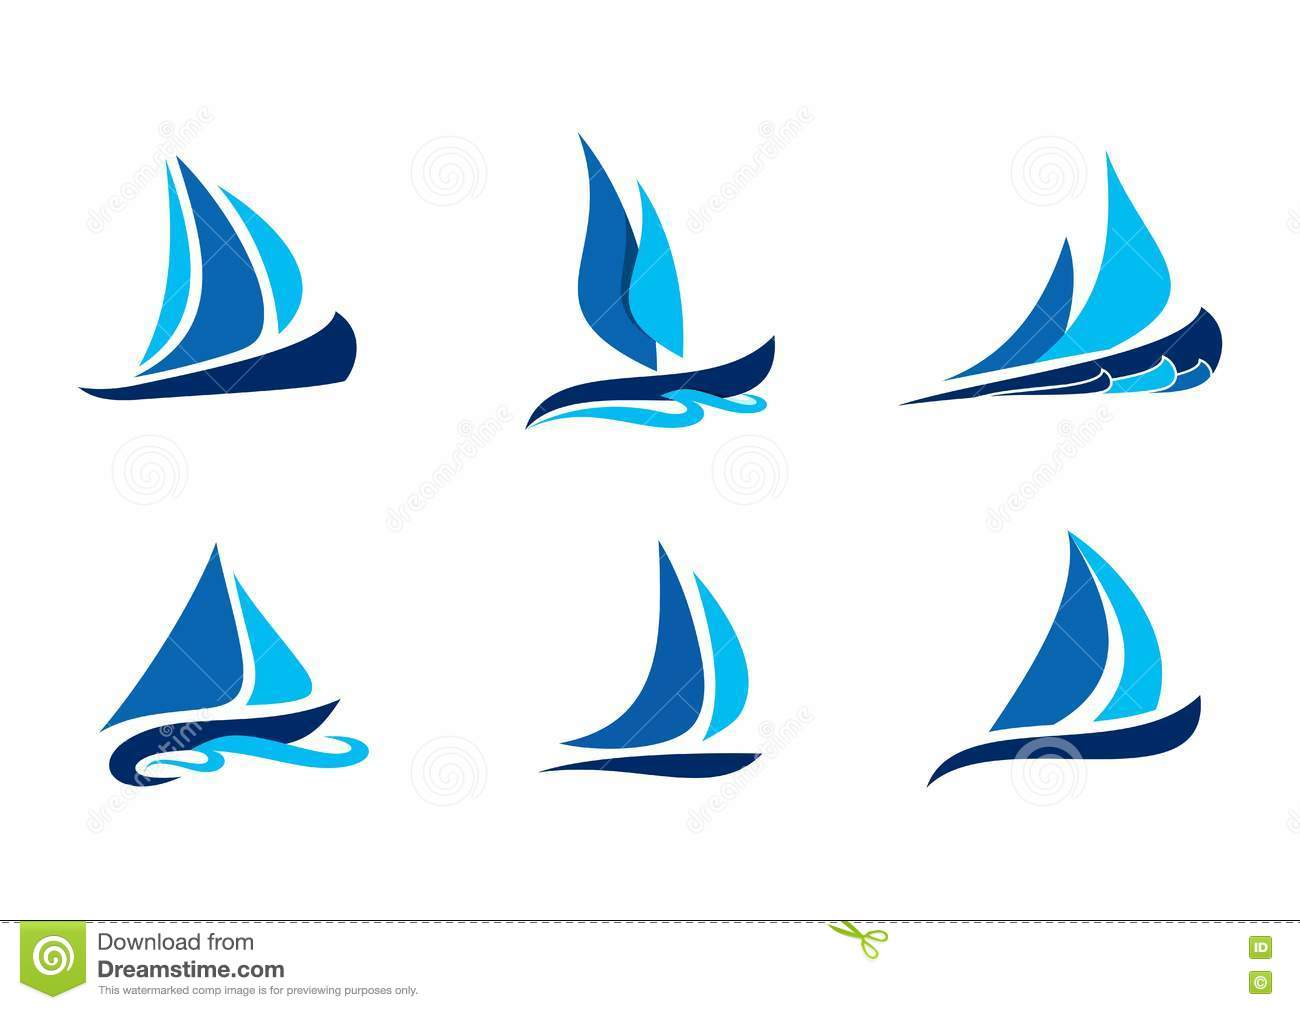 Sailing, Boat, Logo, Sailboat Symbol, Creative Vector ...